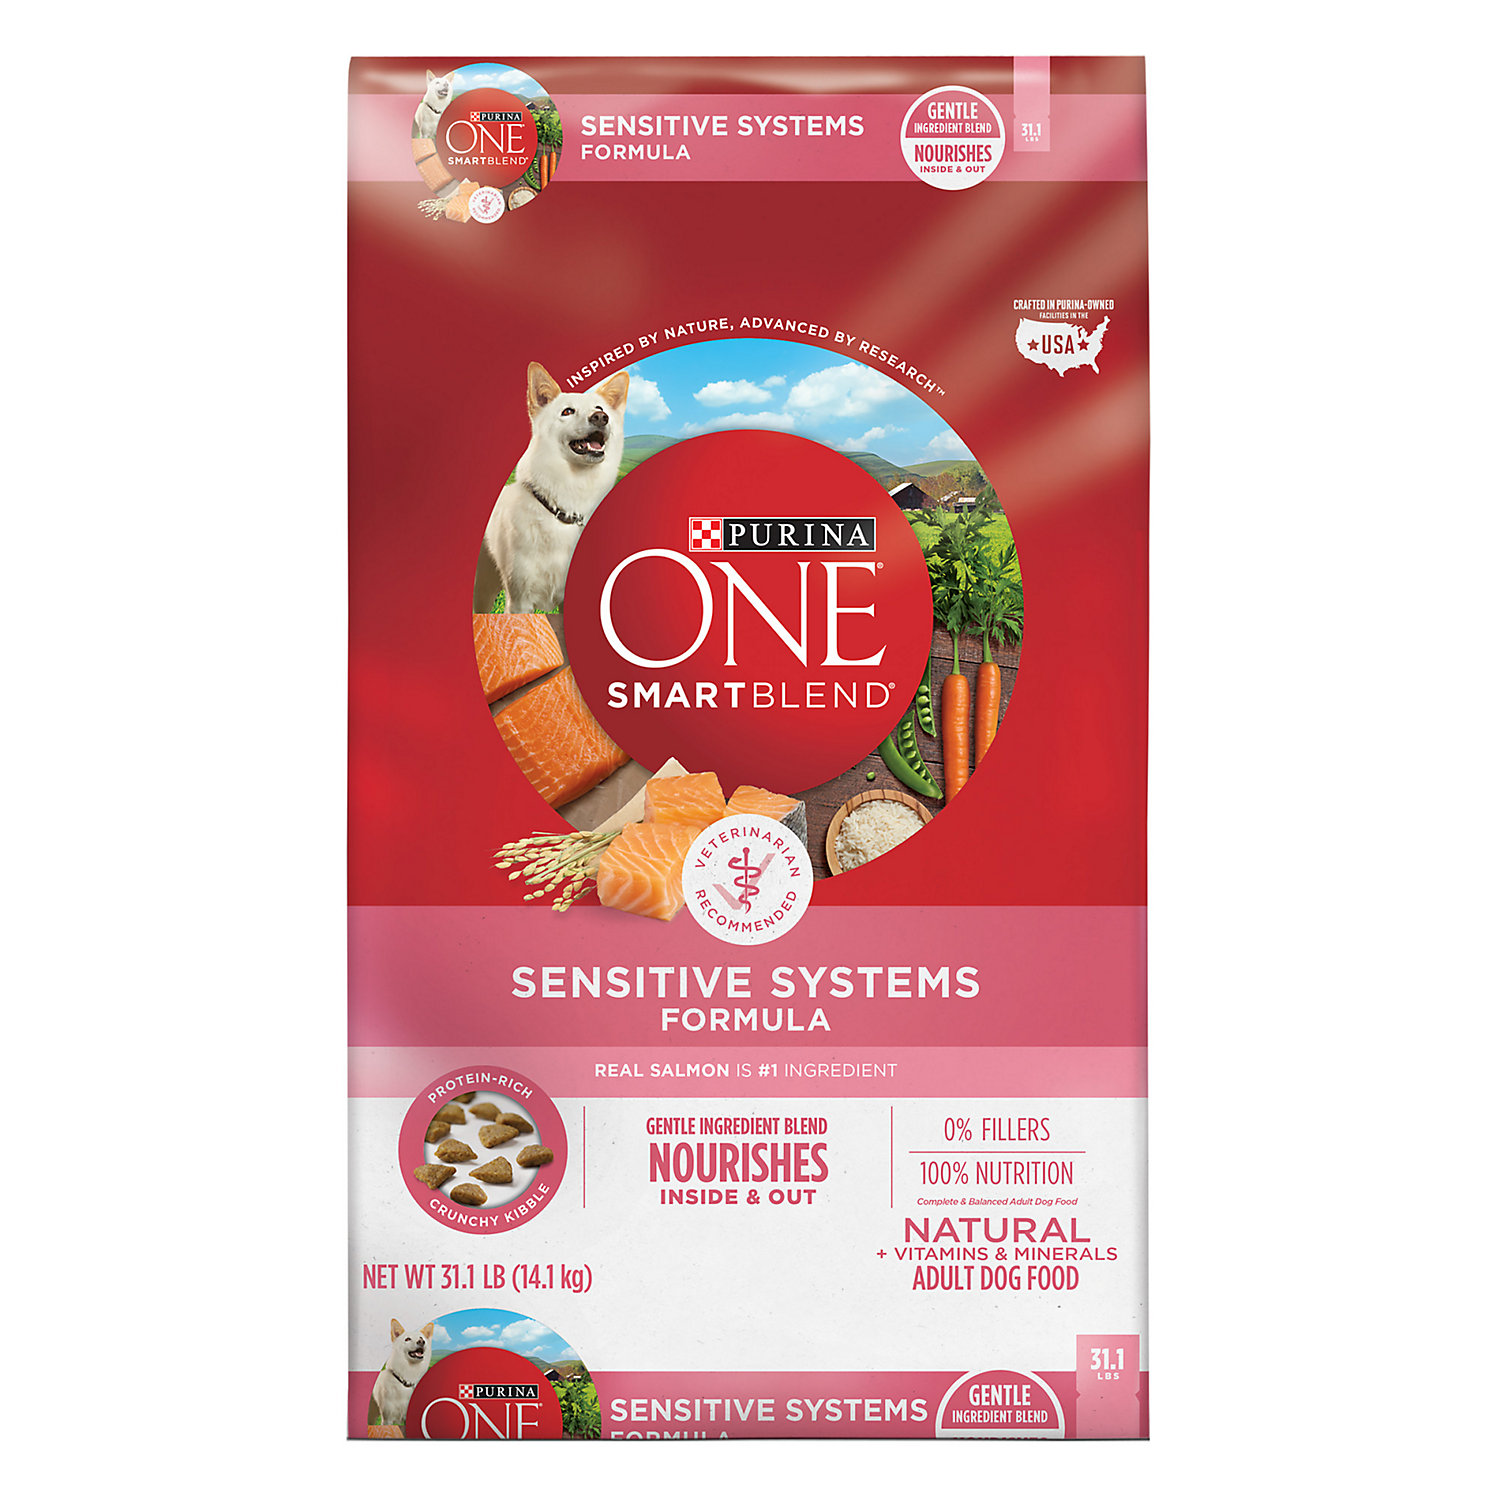 Purina One Sensitive Systems Adult Dog Food 31.1 Lbs.